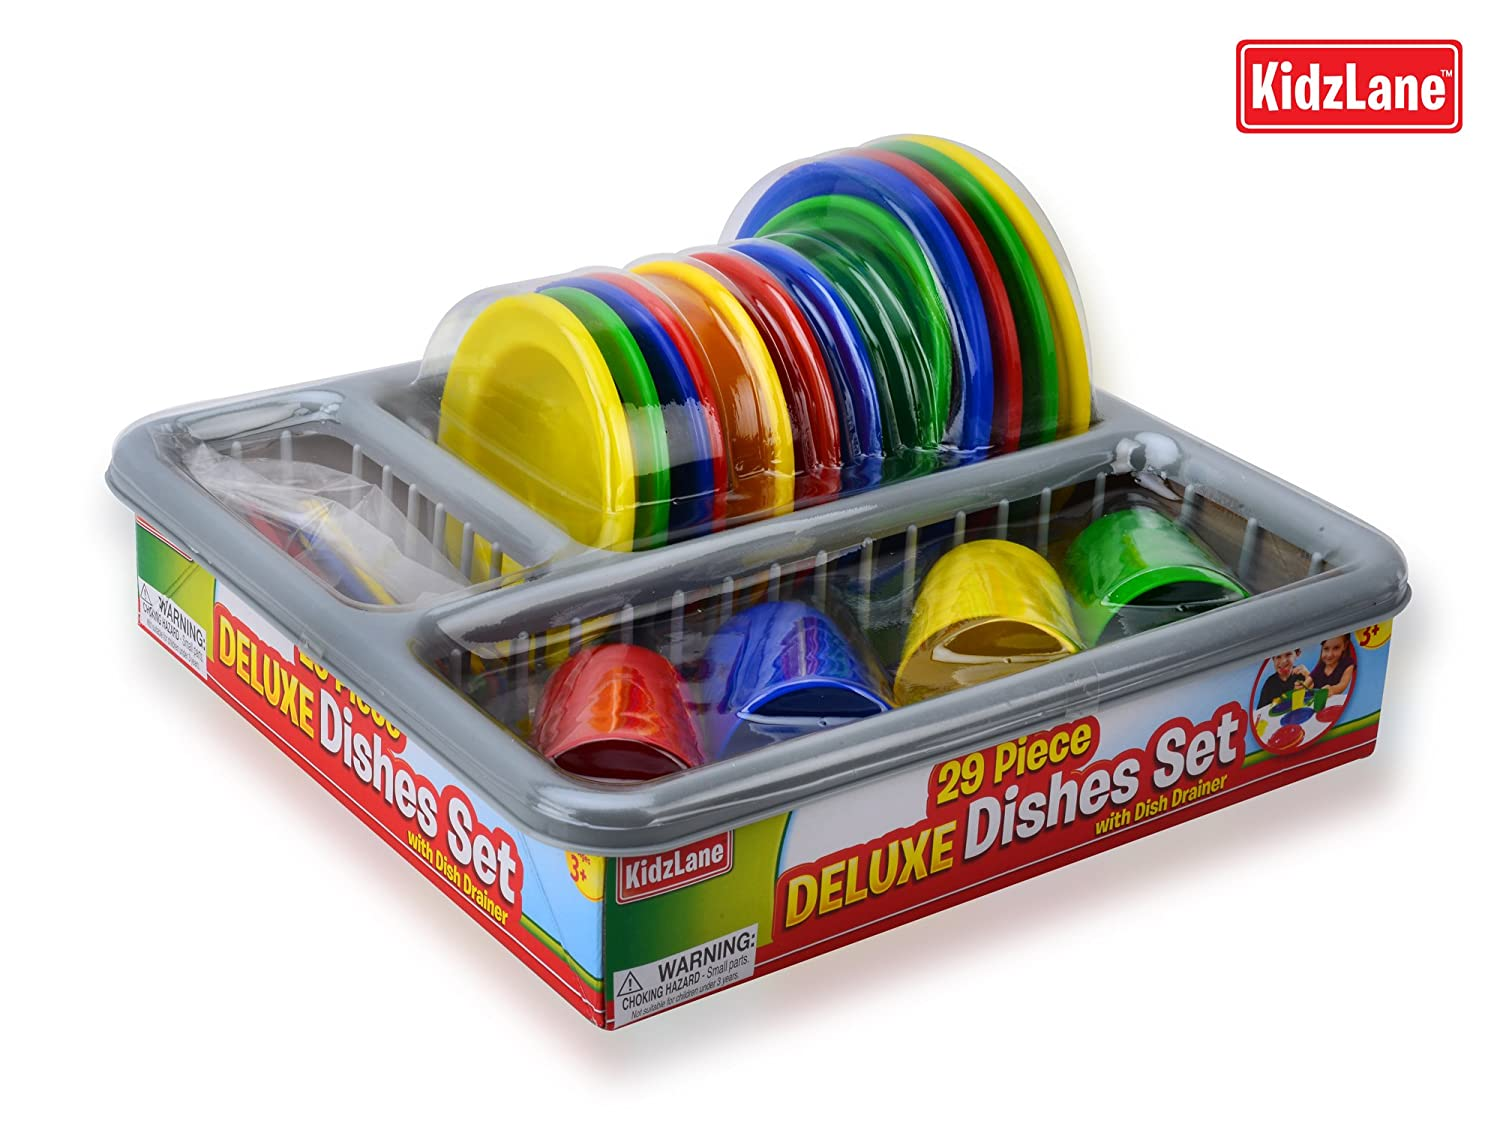 Kids play dishes set dish piece drainer bowls cups